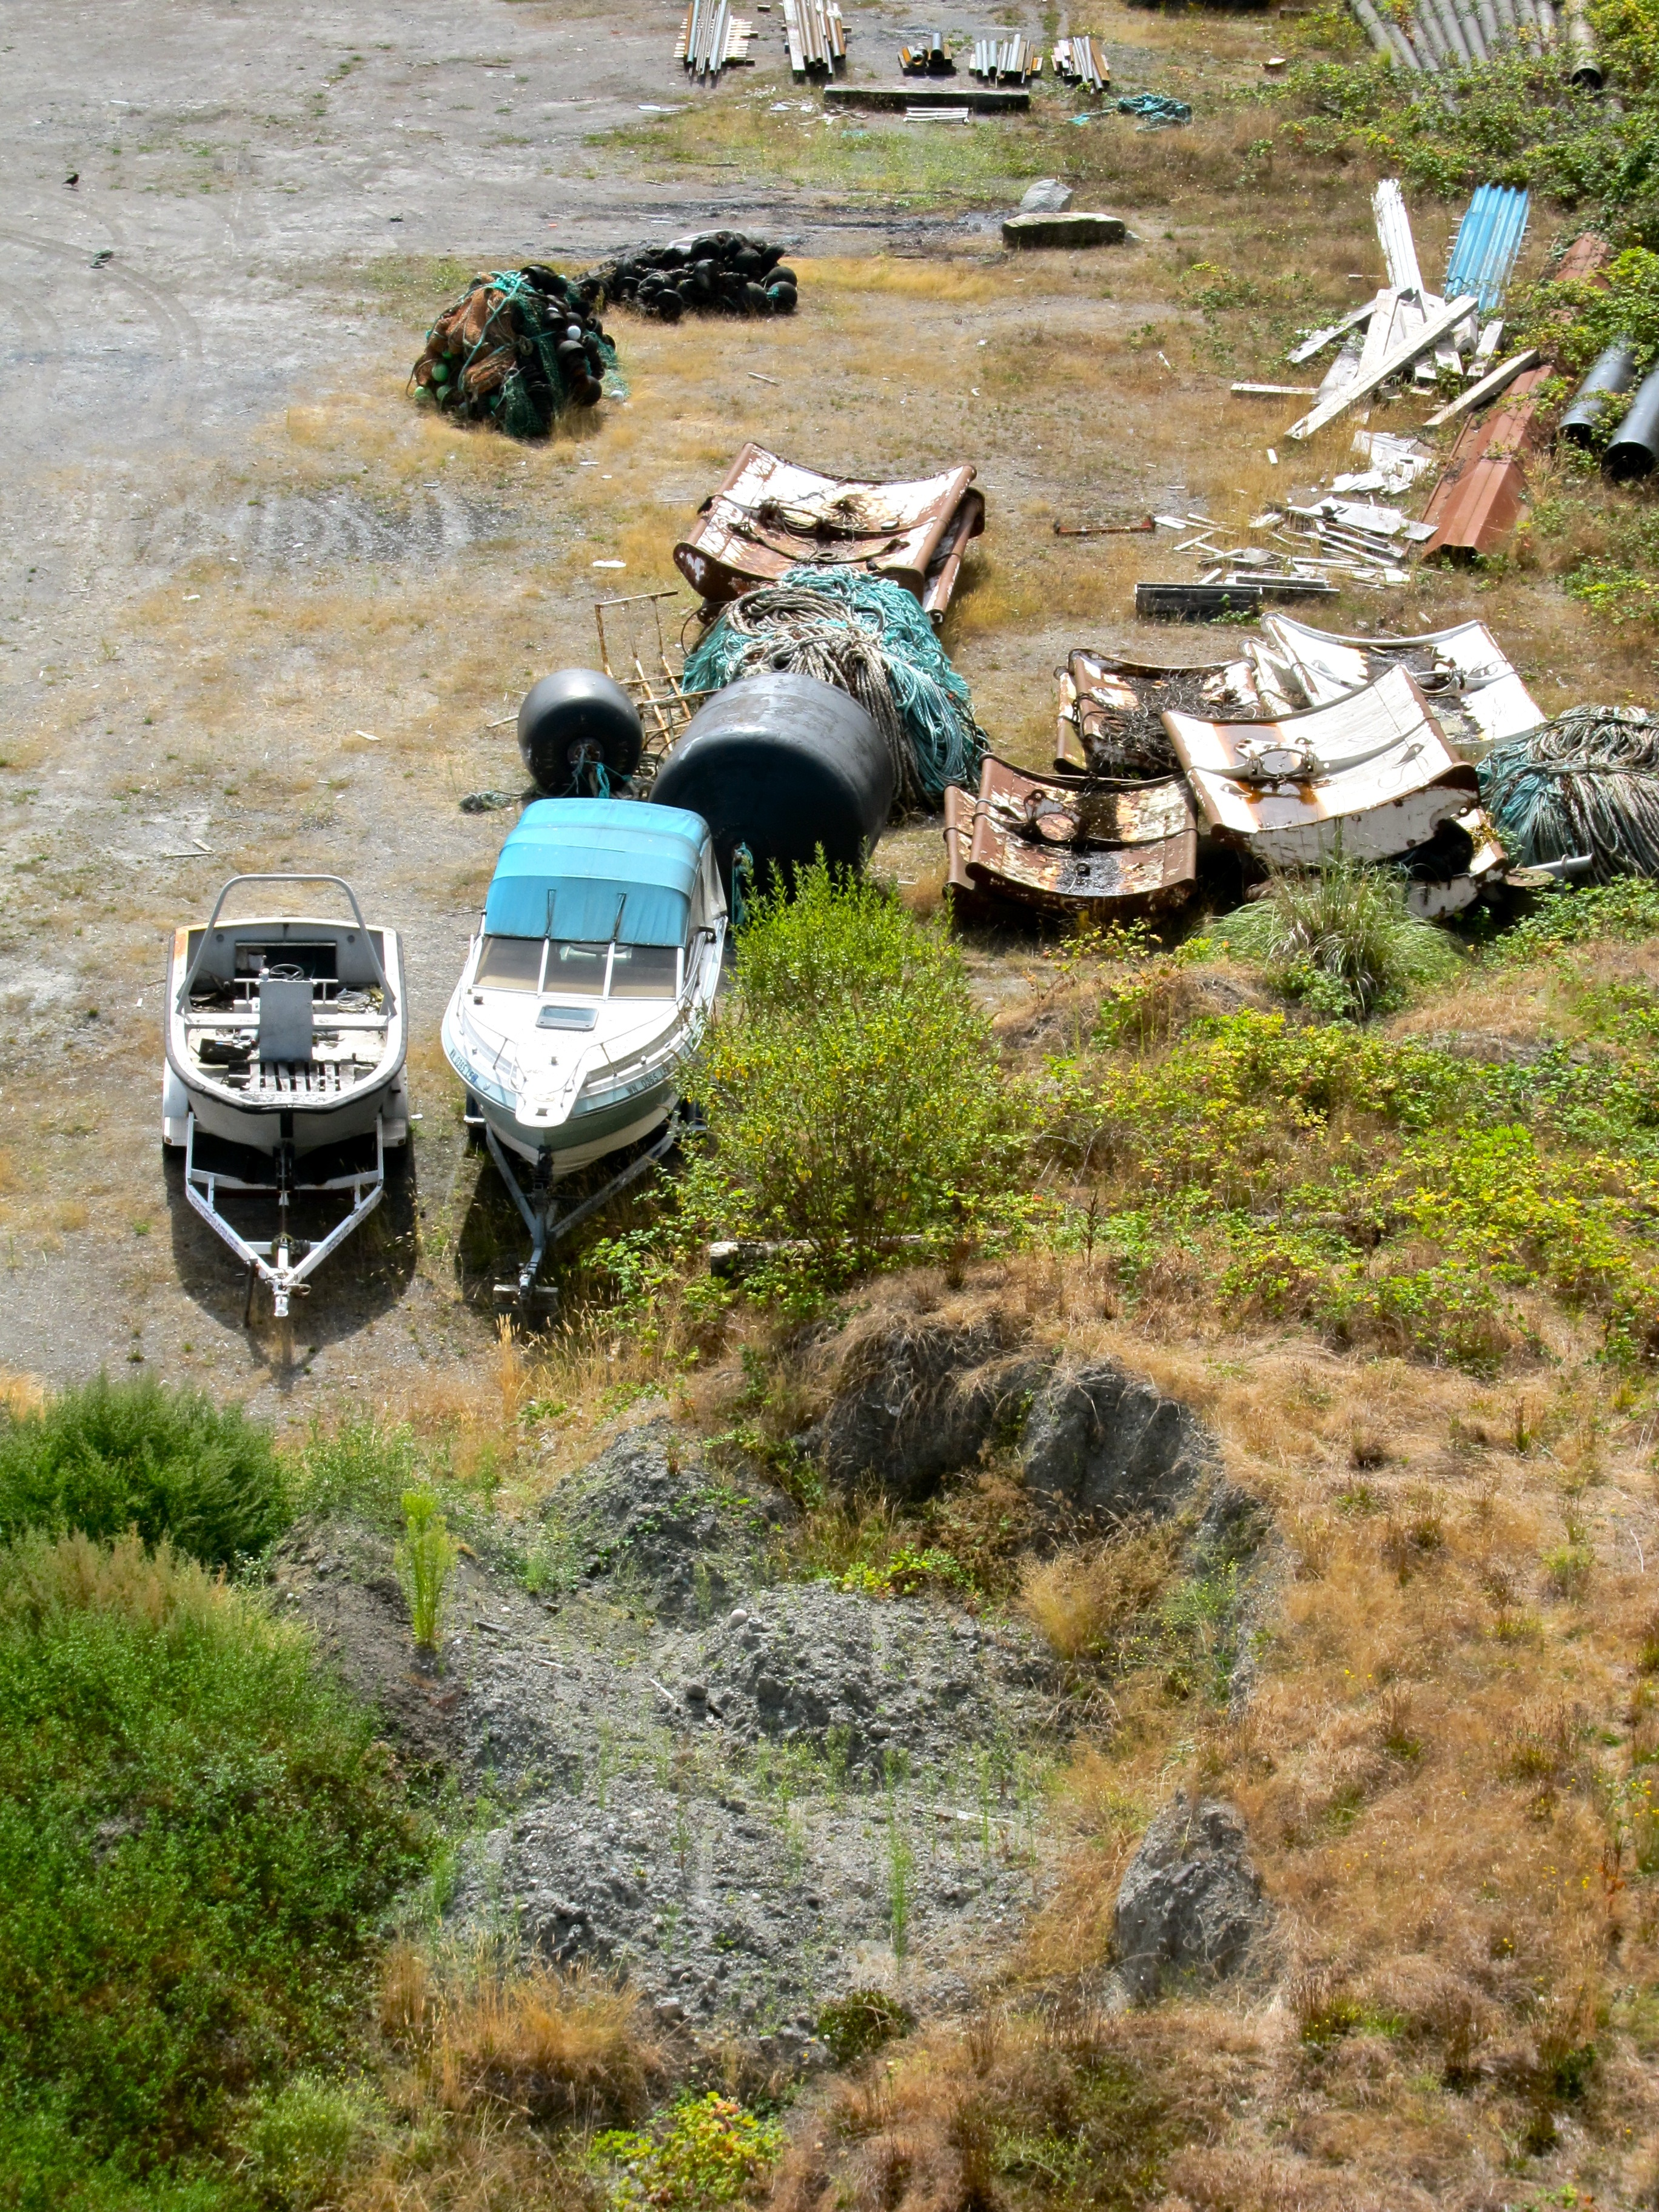 Ship Junkyard, Magnolia Bridge